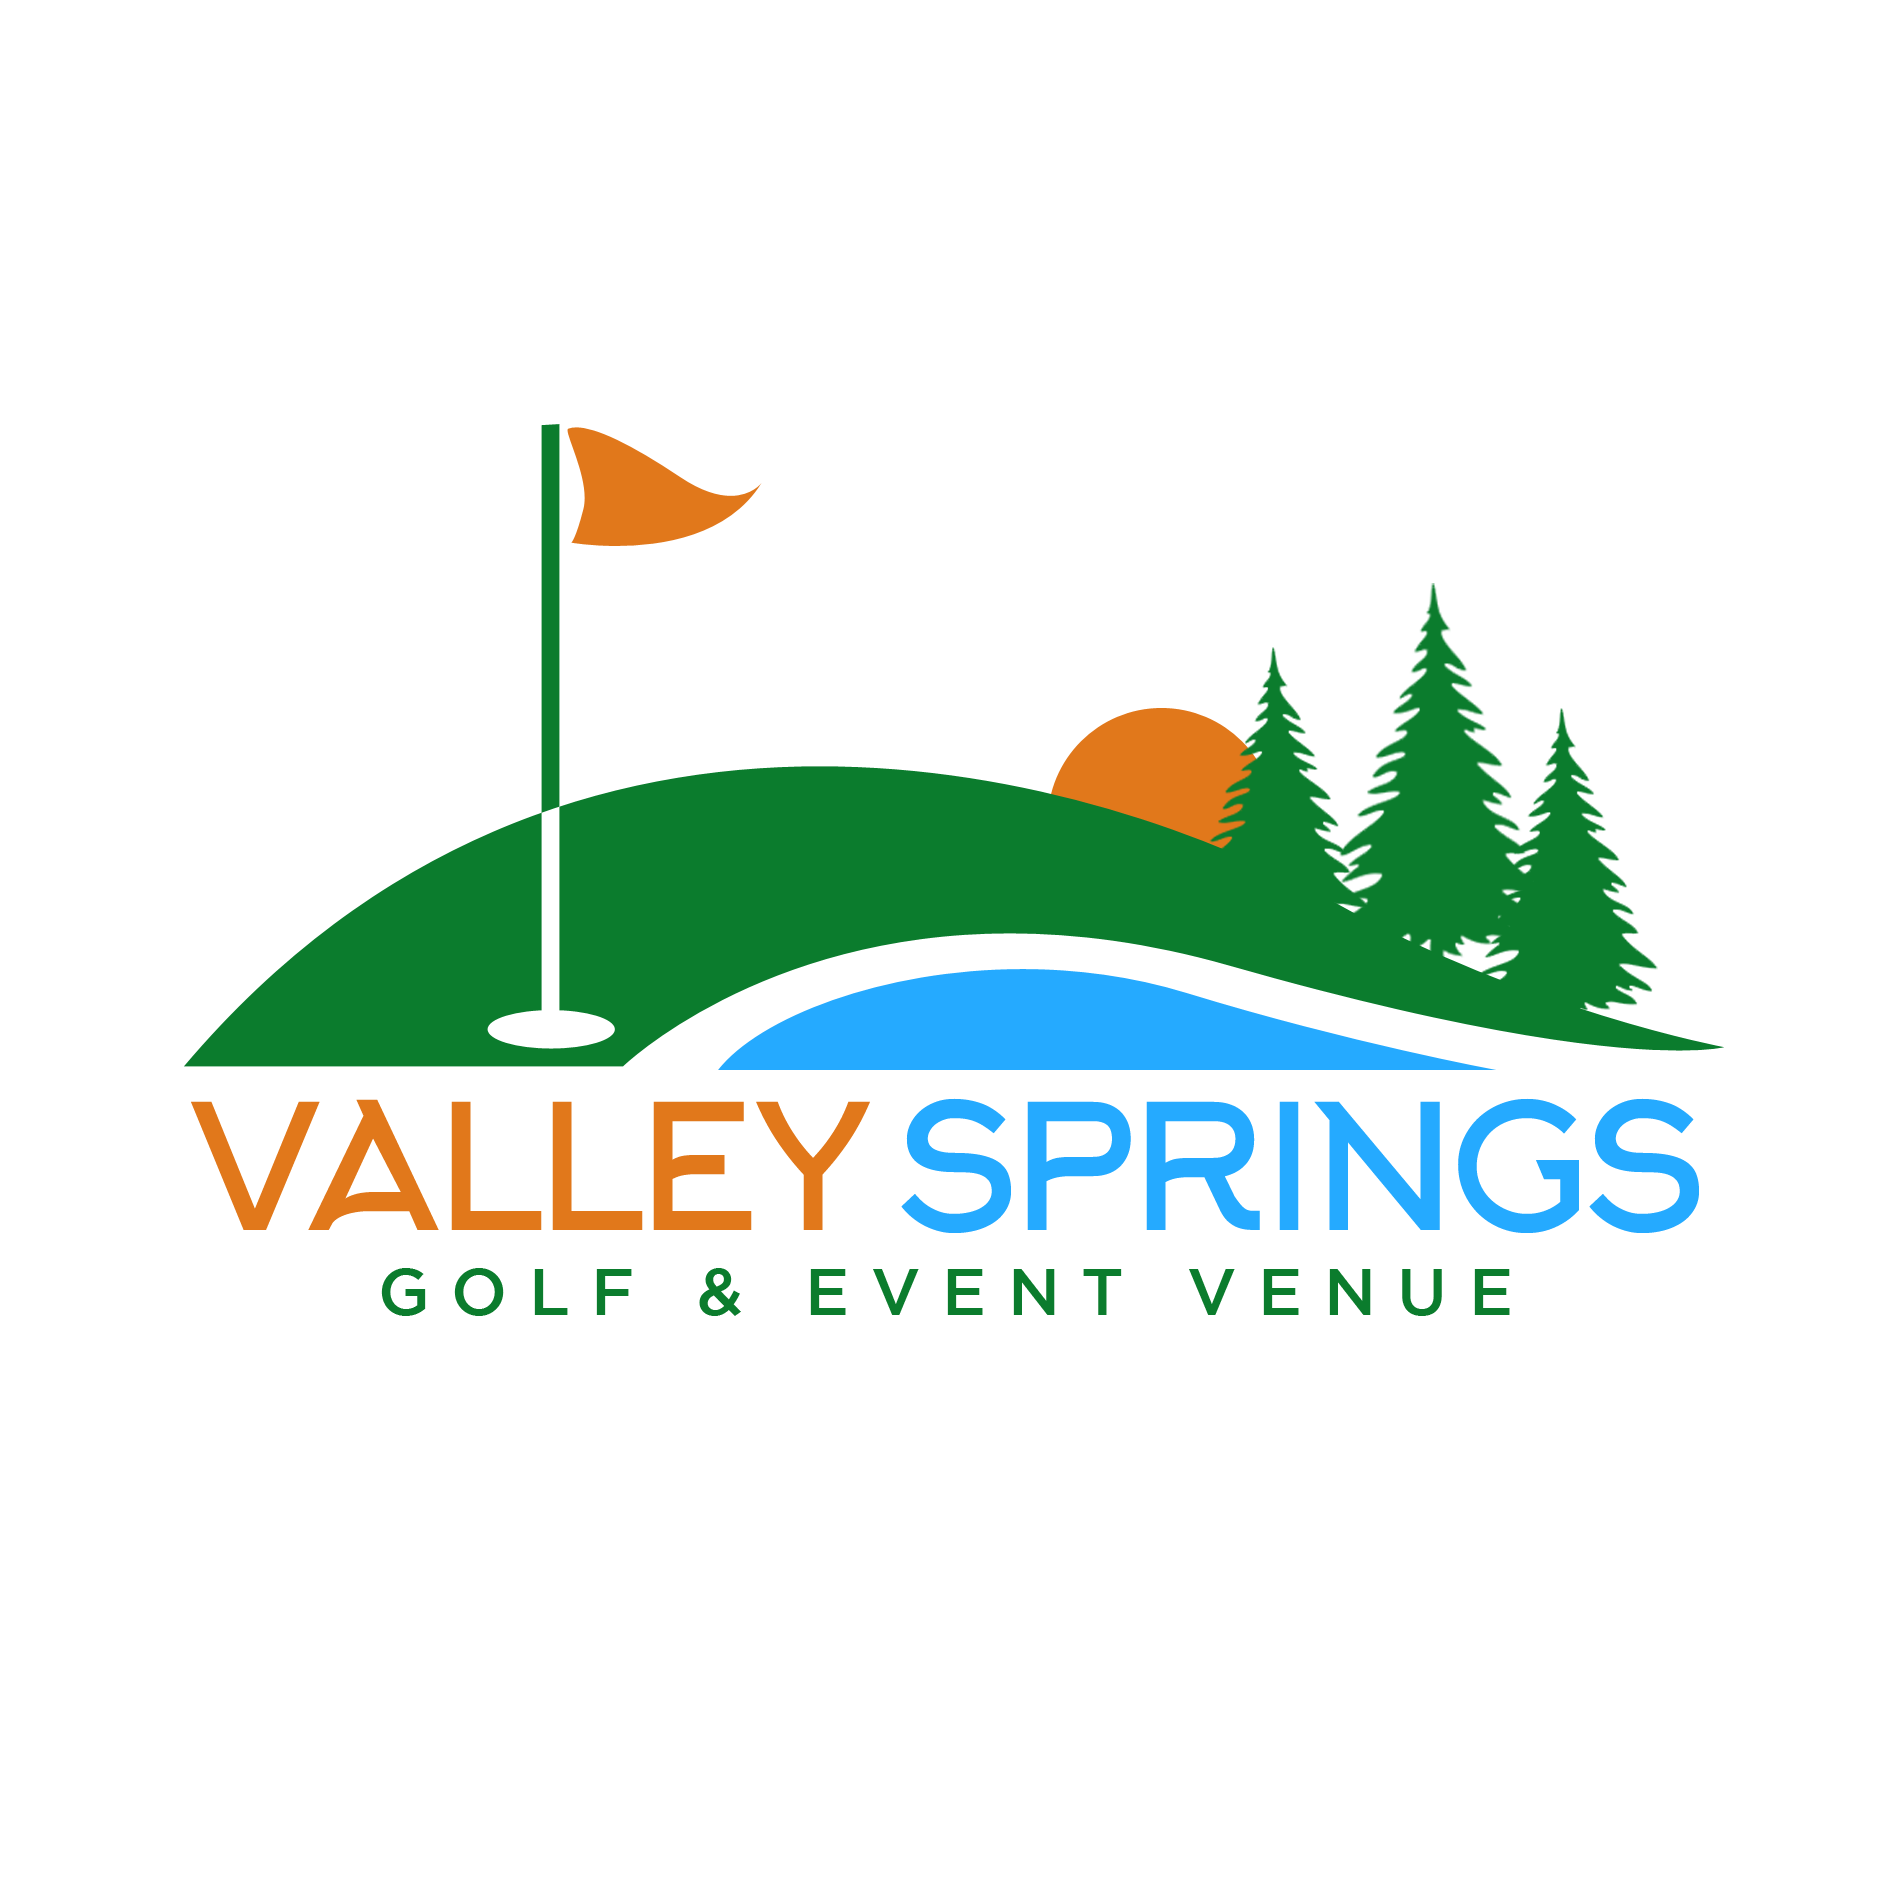 Valley Springs Golf & Events